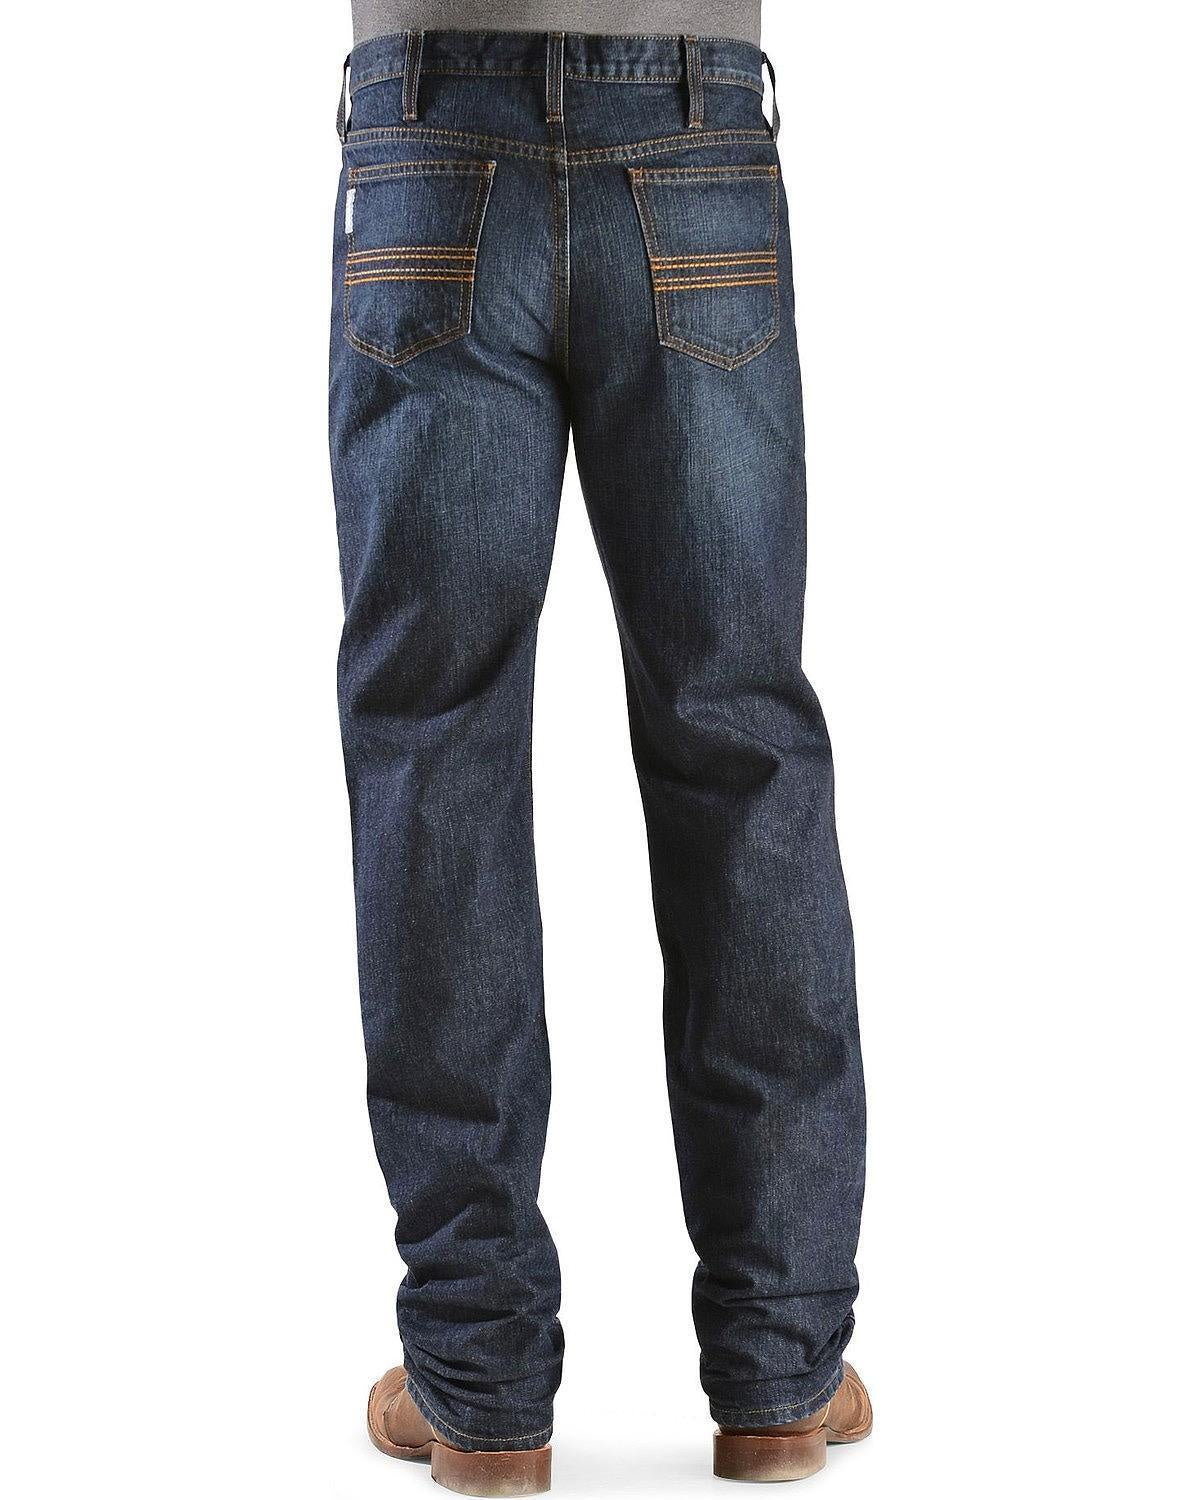 Mens Cinch Silver Label Dark Jean